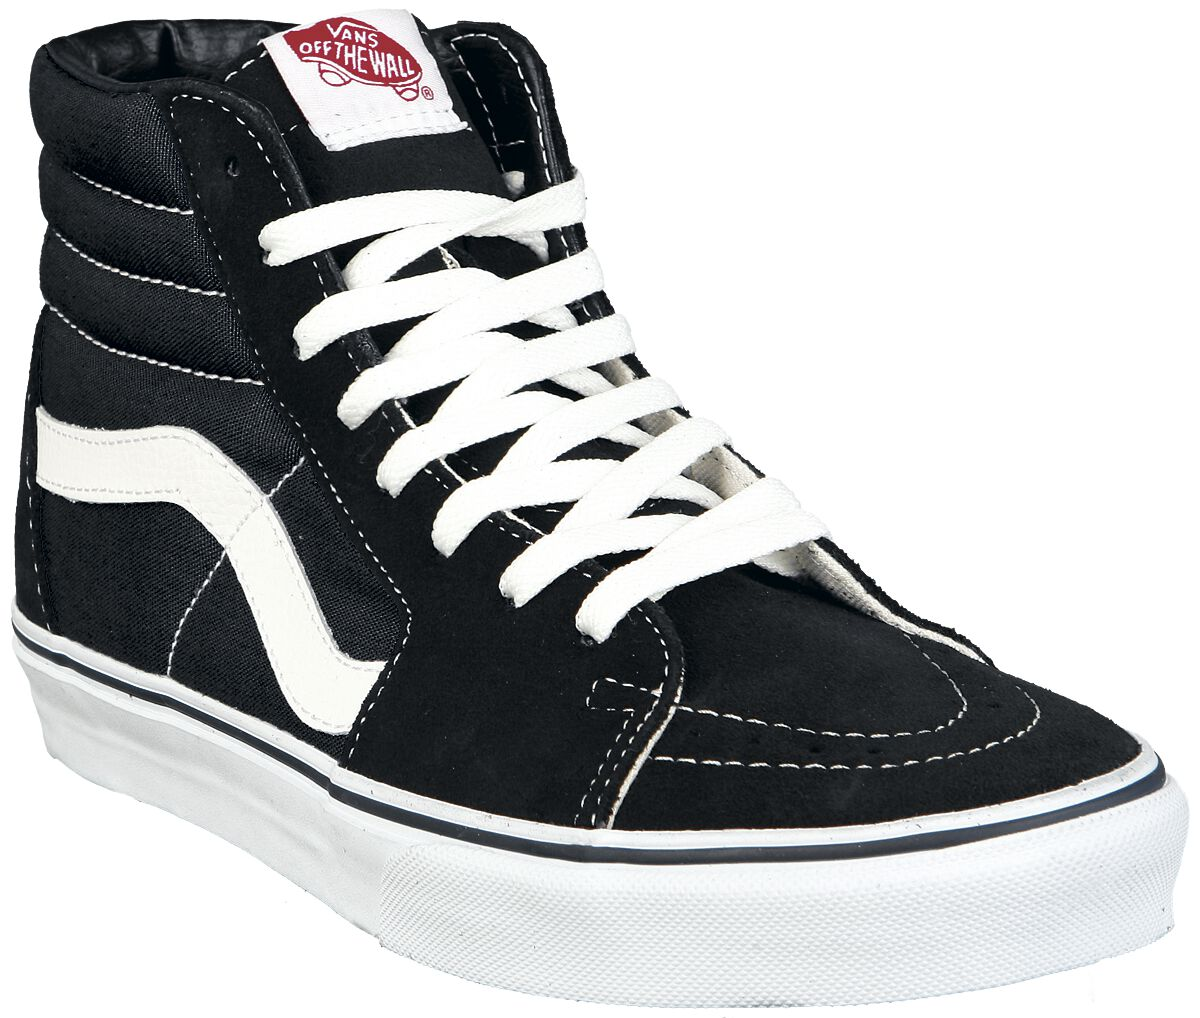 Image of   Vans Sk8-Hi Sneakers sort-hvid